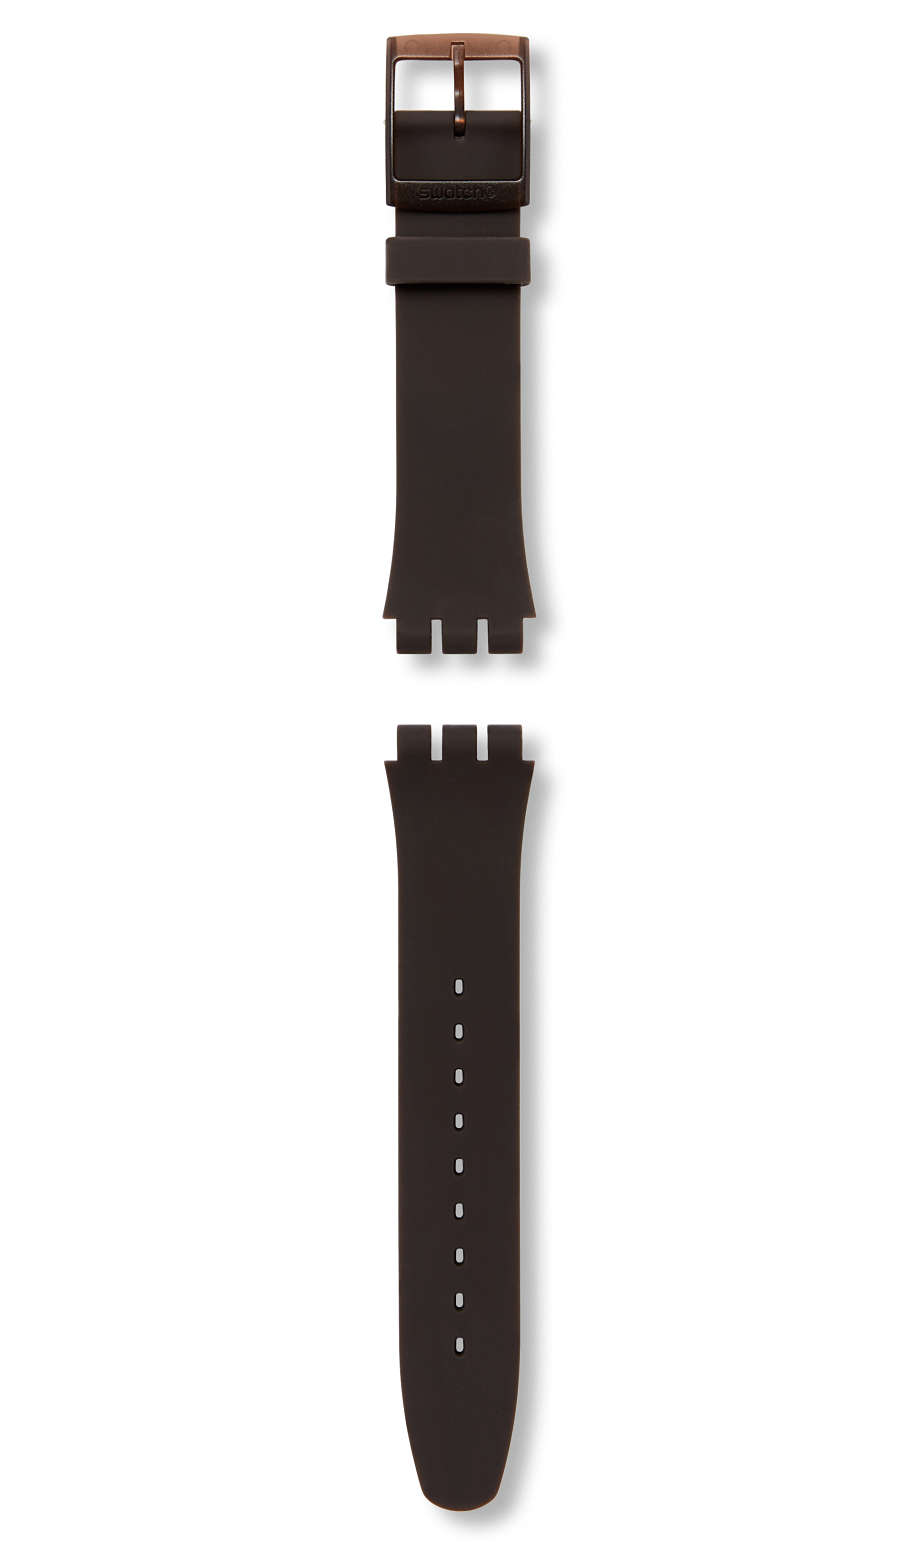 Swatch - BROWN REBEL / SILICONE STRAP - 1